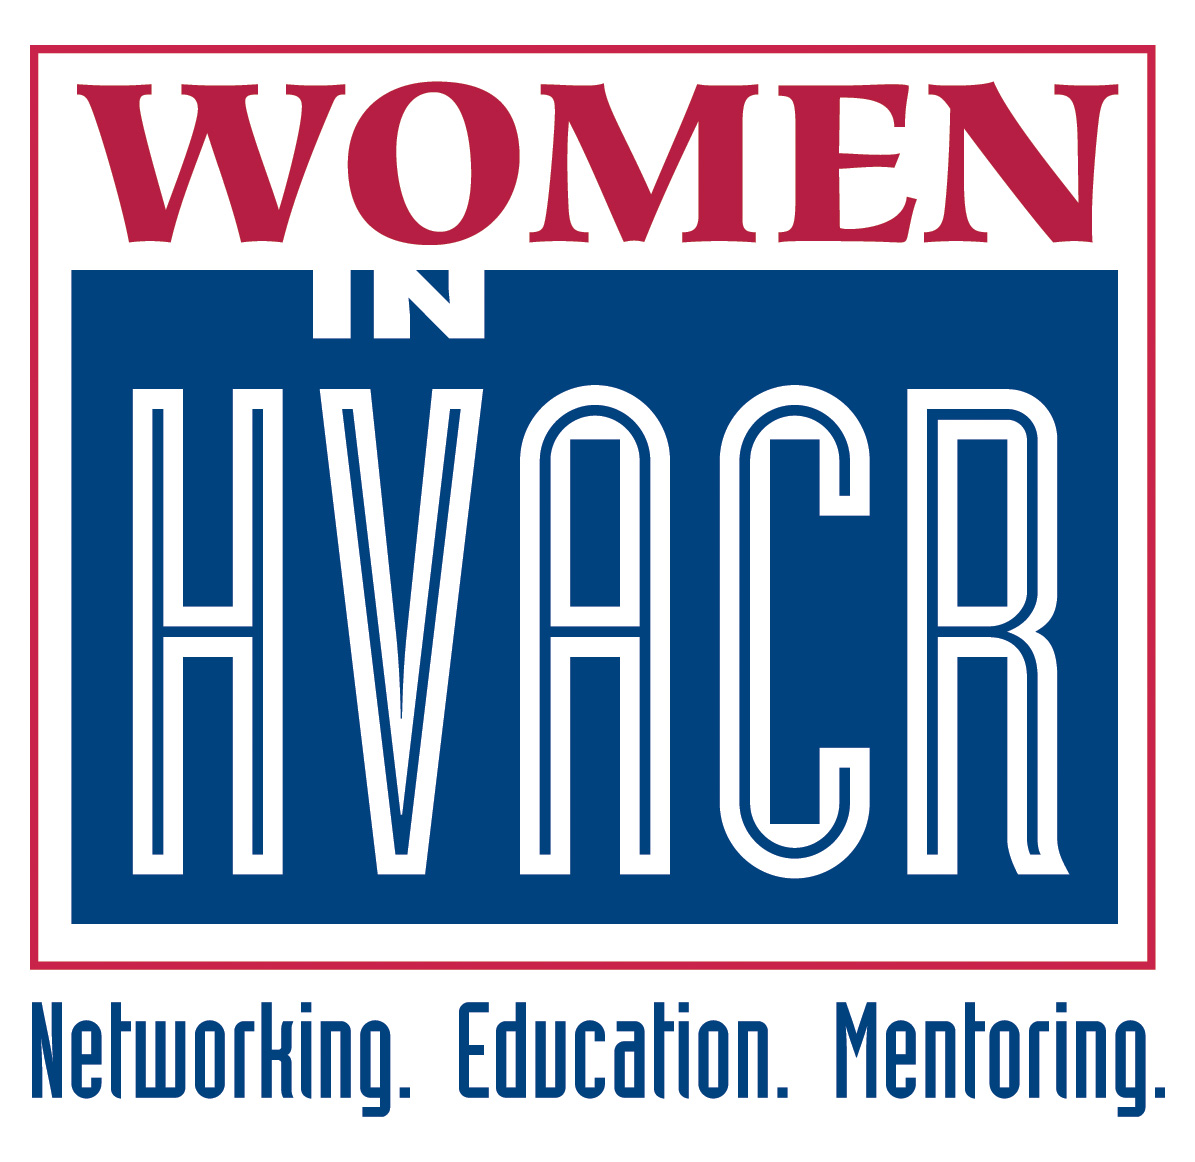 Women In HVACR P.O. Box 2206 Orland Park, IL 60462 - Phone: 708-417-5946